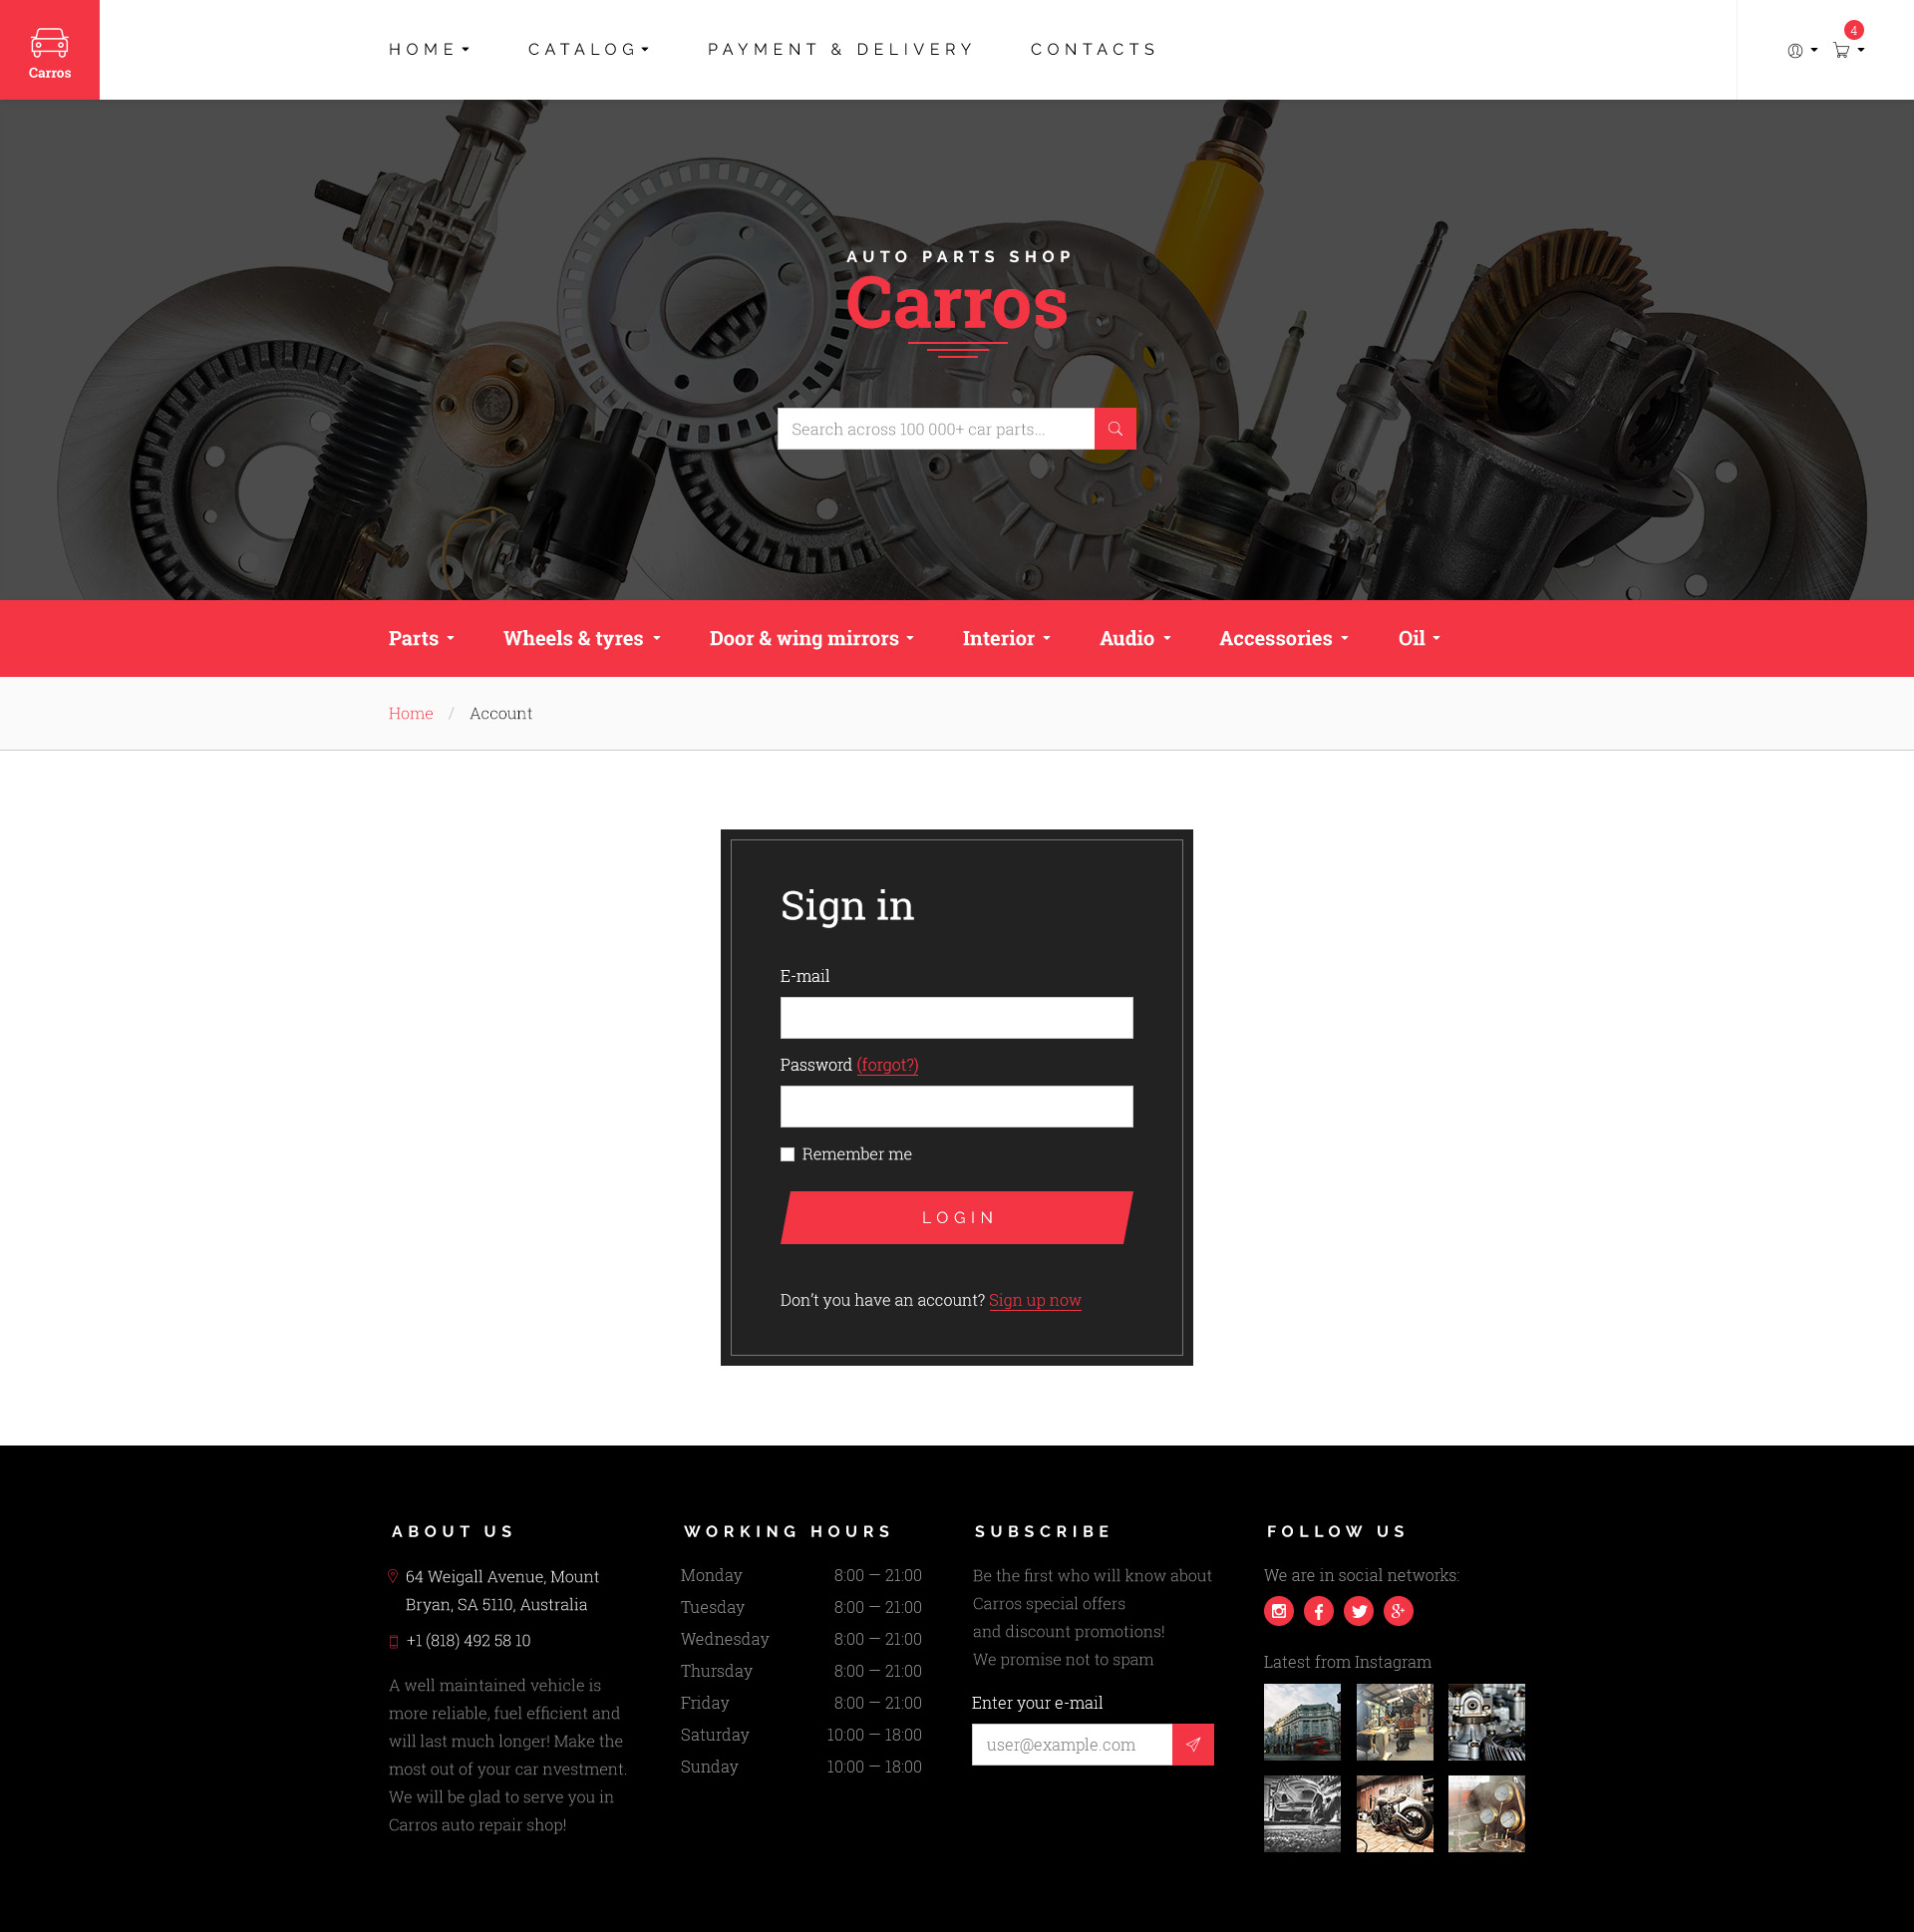 Carros — Auto Service Tuning Center Parts Retailer PSD